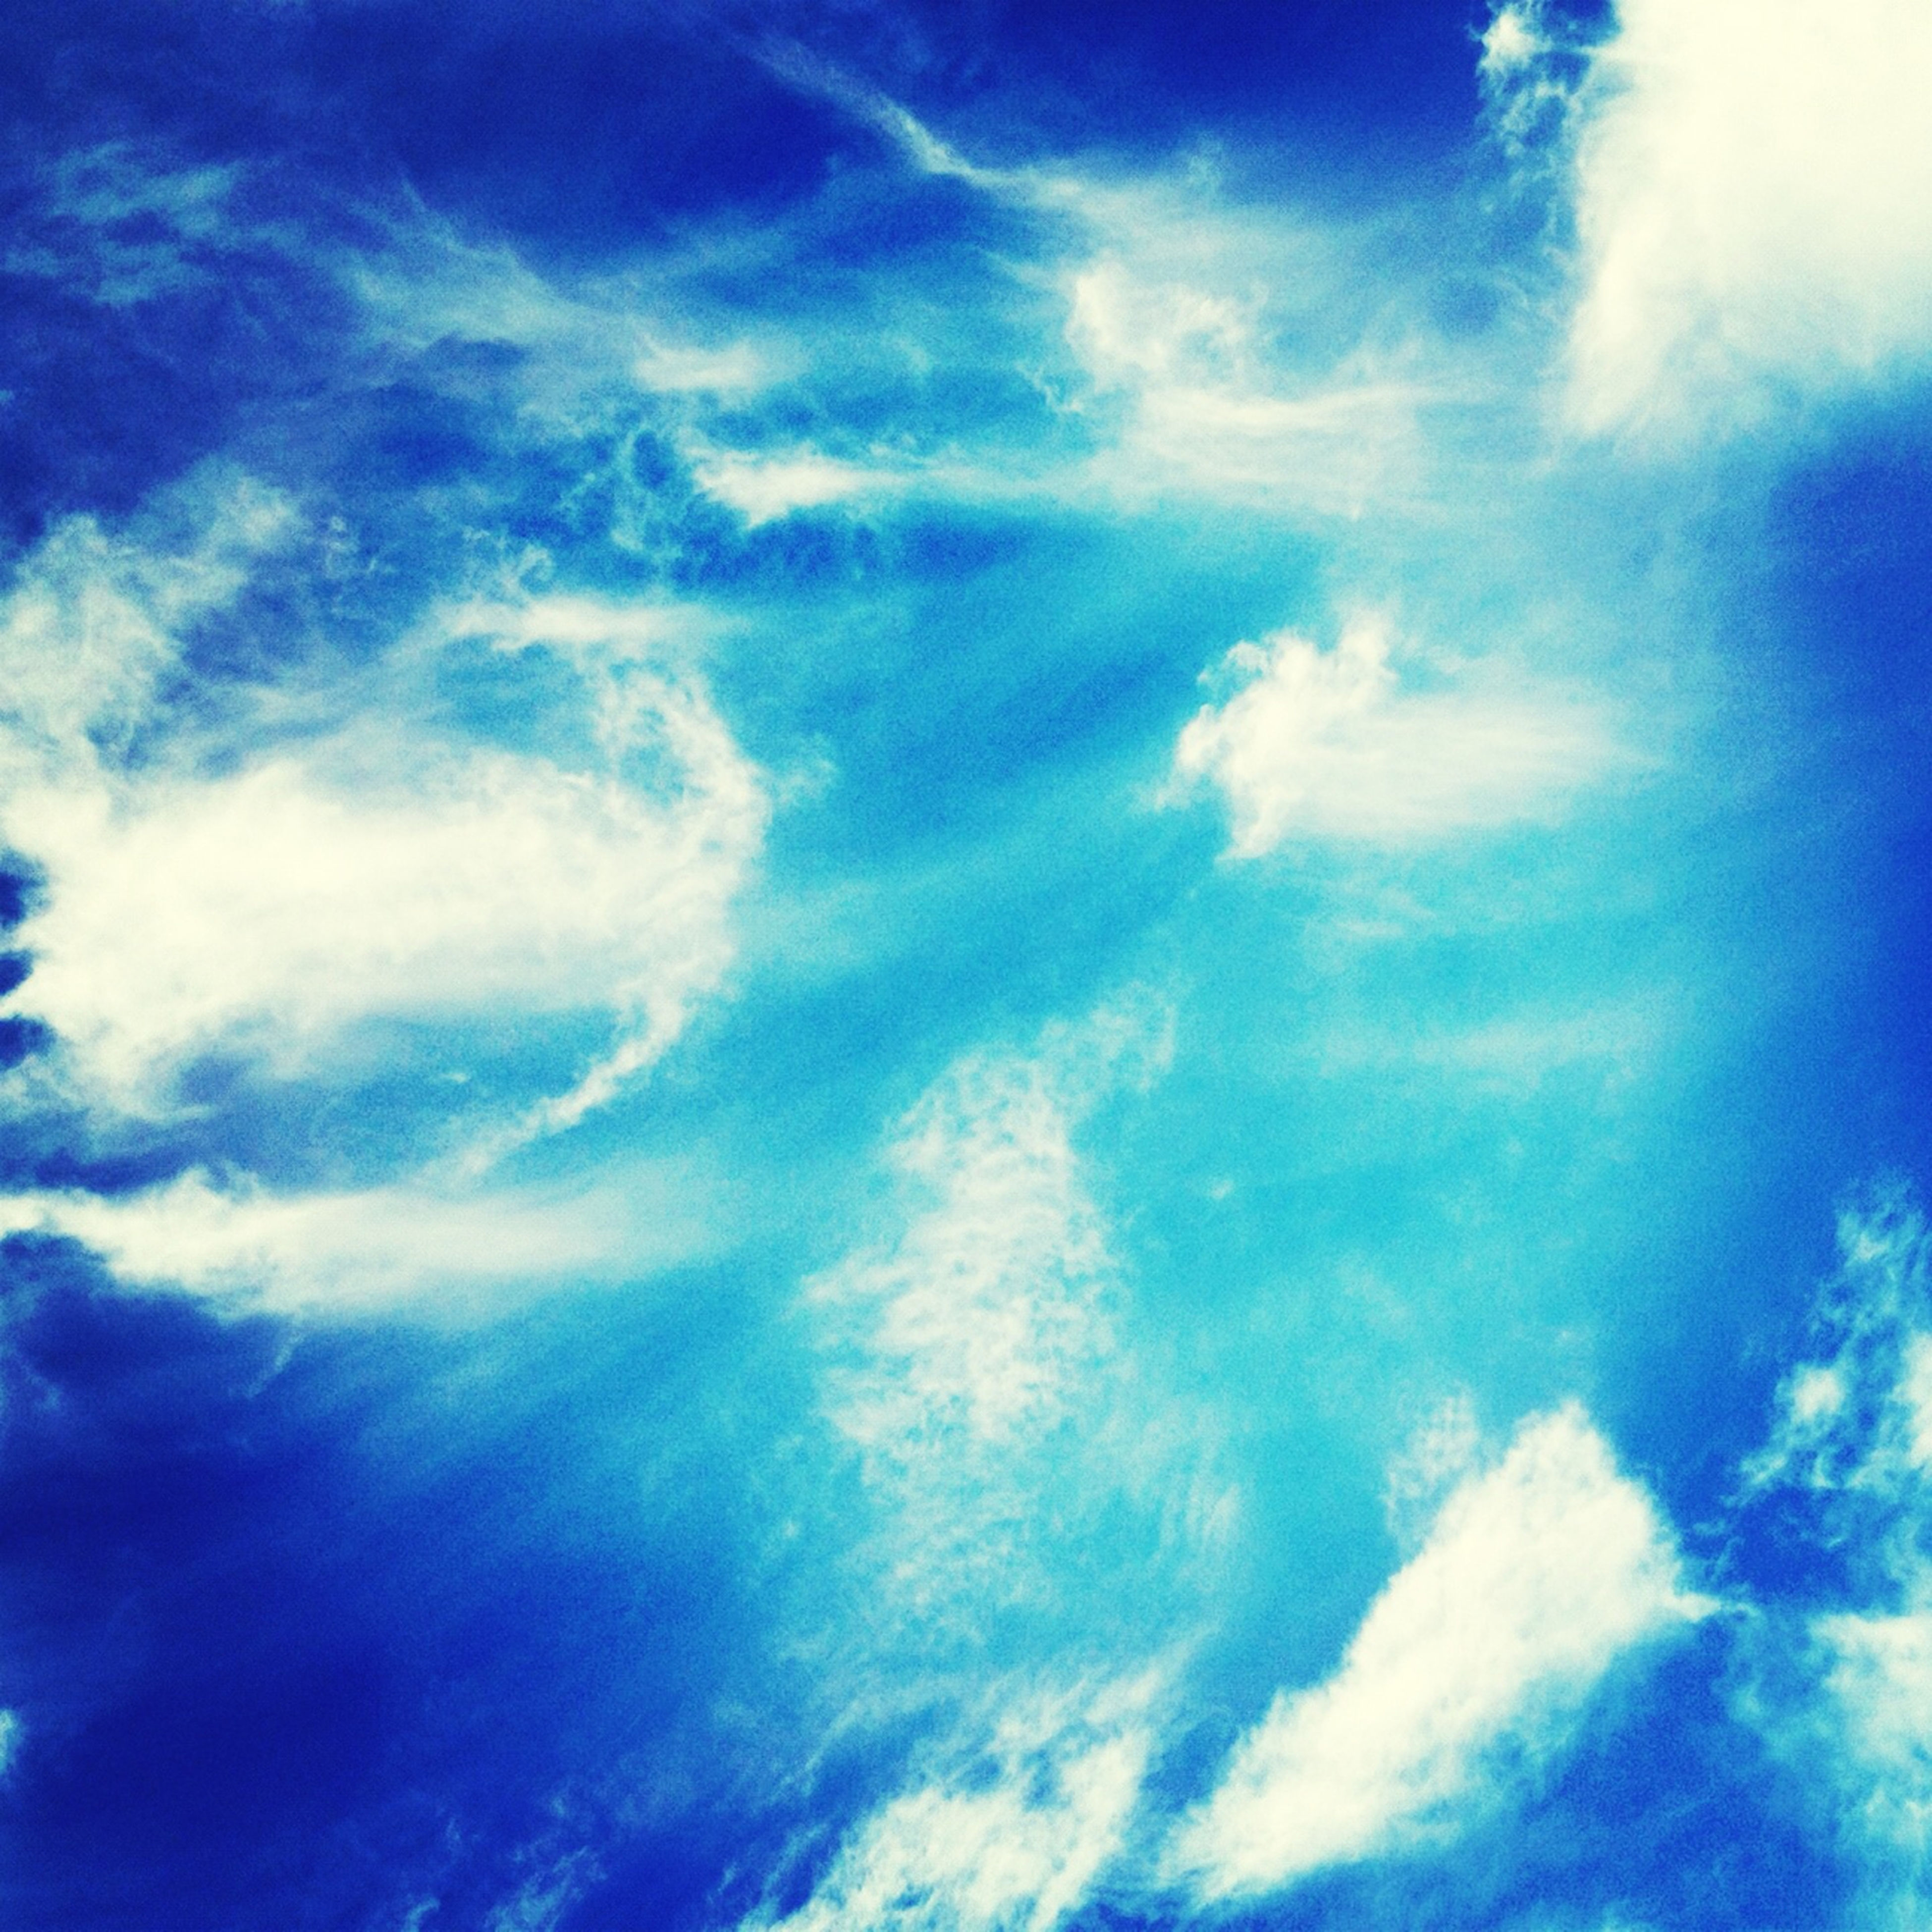 blue, low angle view, sky, cloud - sky, sky only, beauty in nature, tranquility, scenics, backgrounds, nature, tranquil scene, full frame, cloudy, cloudscape, cloud, idyllic, outdoors, day, no people, white color